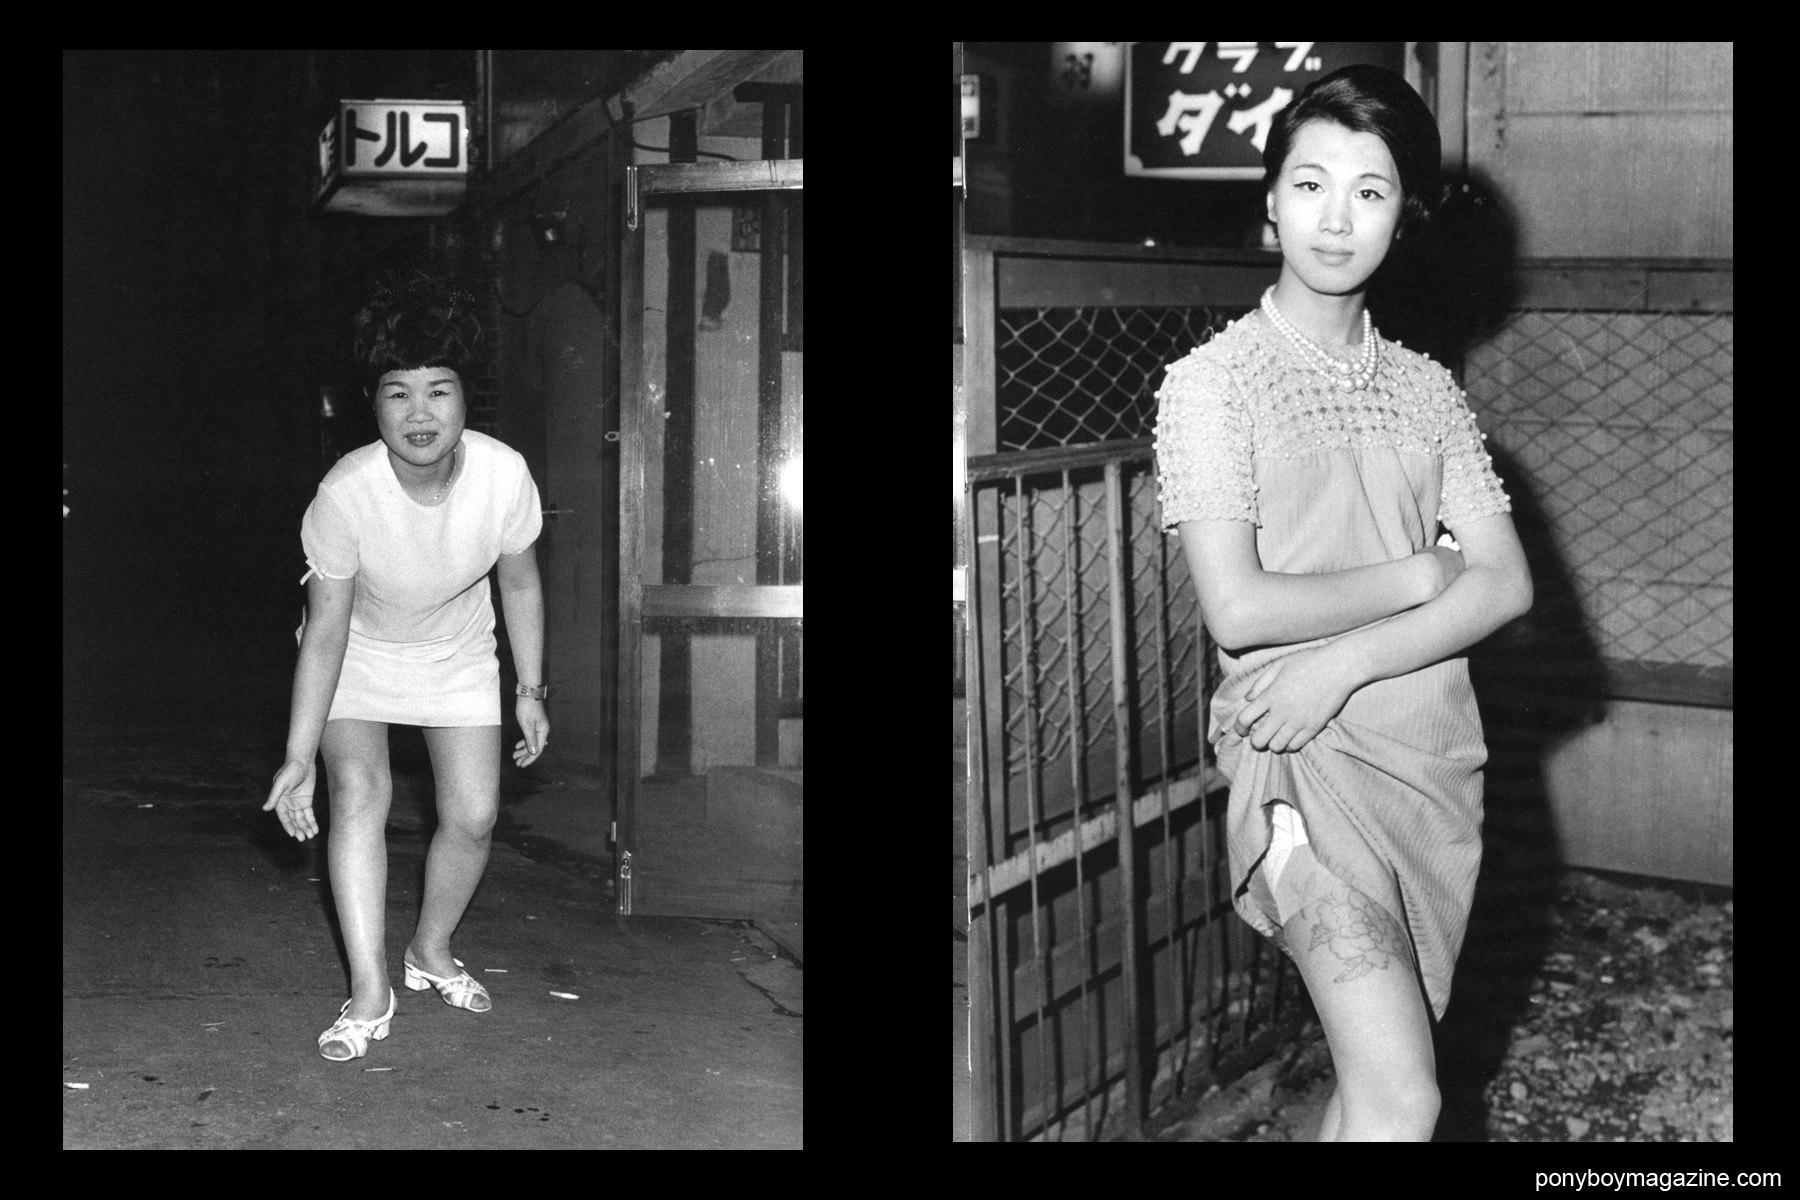 Japanese transvestites in the 1960's photographed by Watanabe Katsumi.